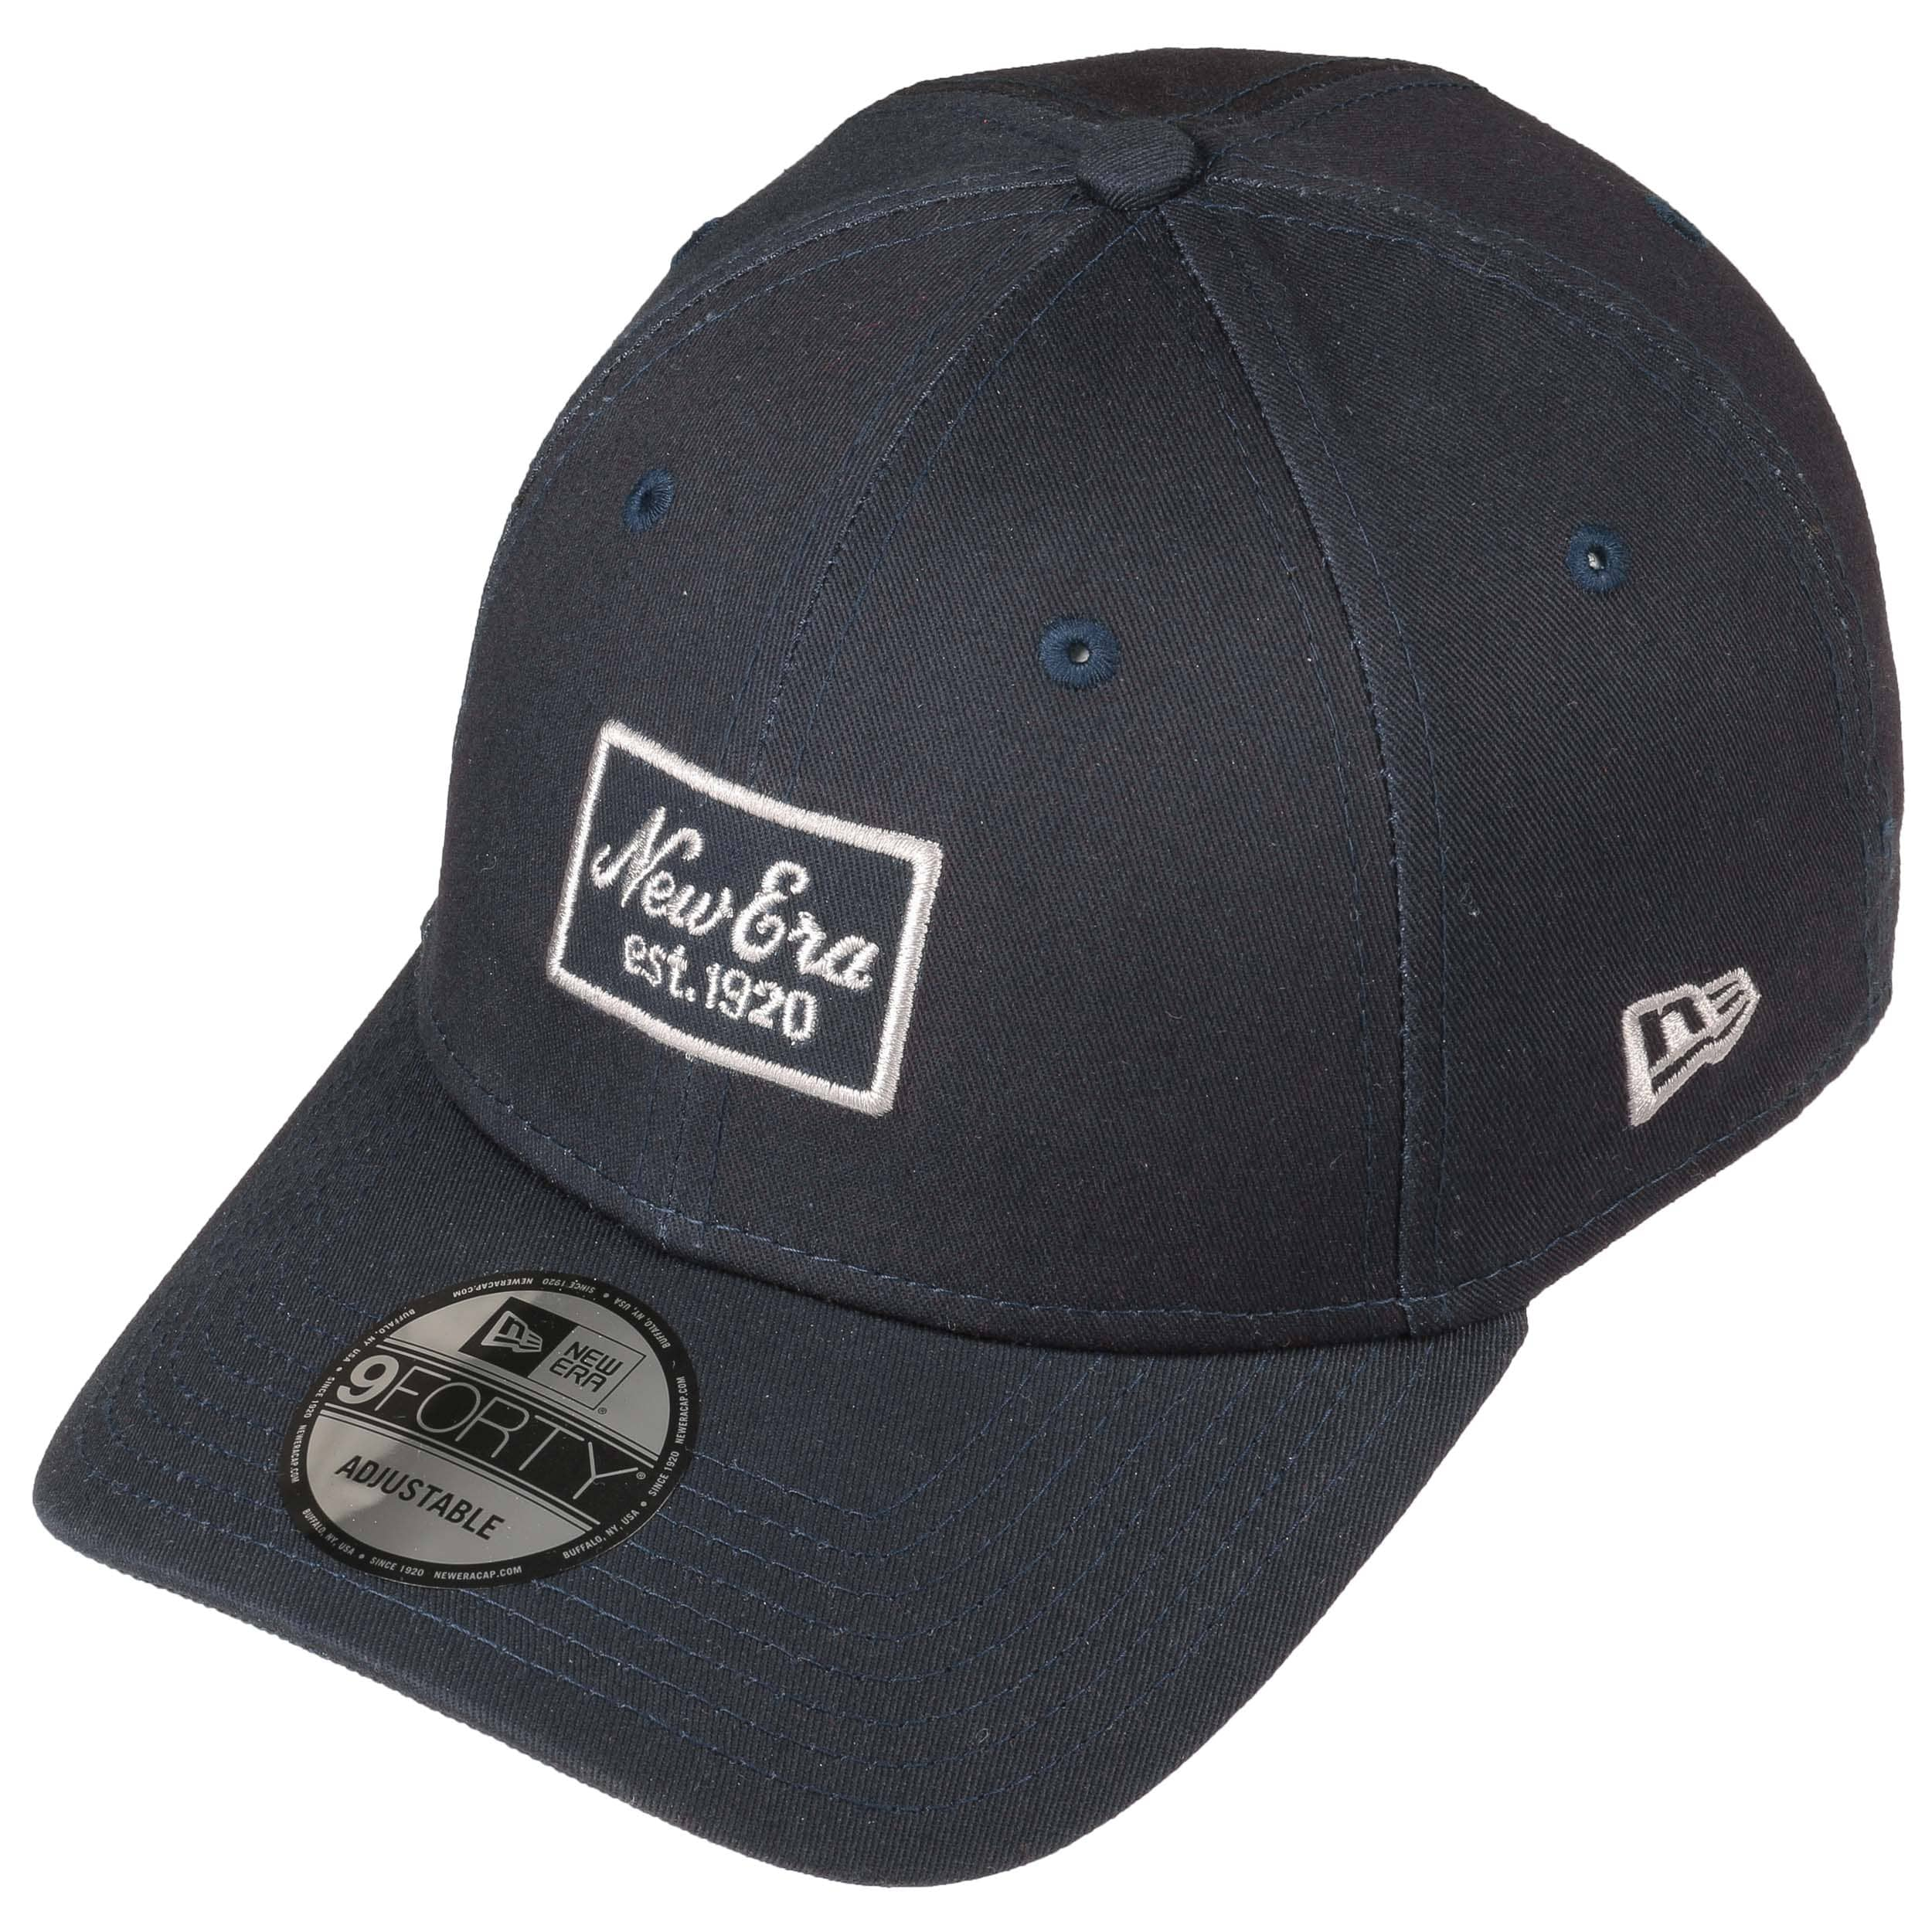 26005819067e5 9Forty Script Patch Cap by New Era - navy 1 ...